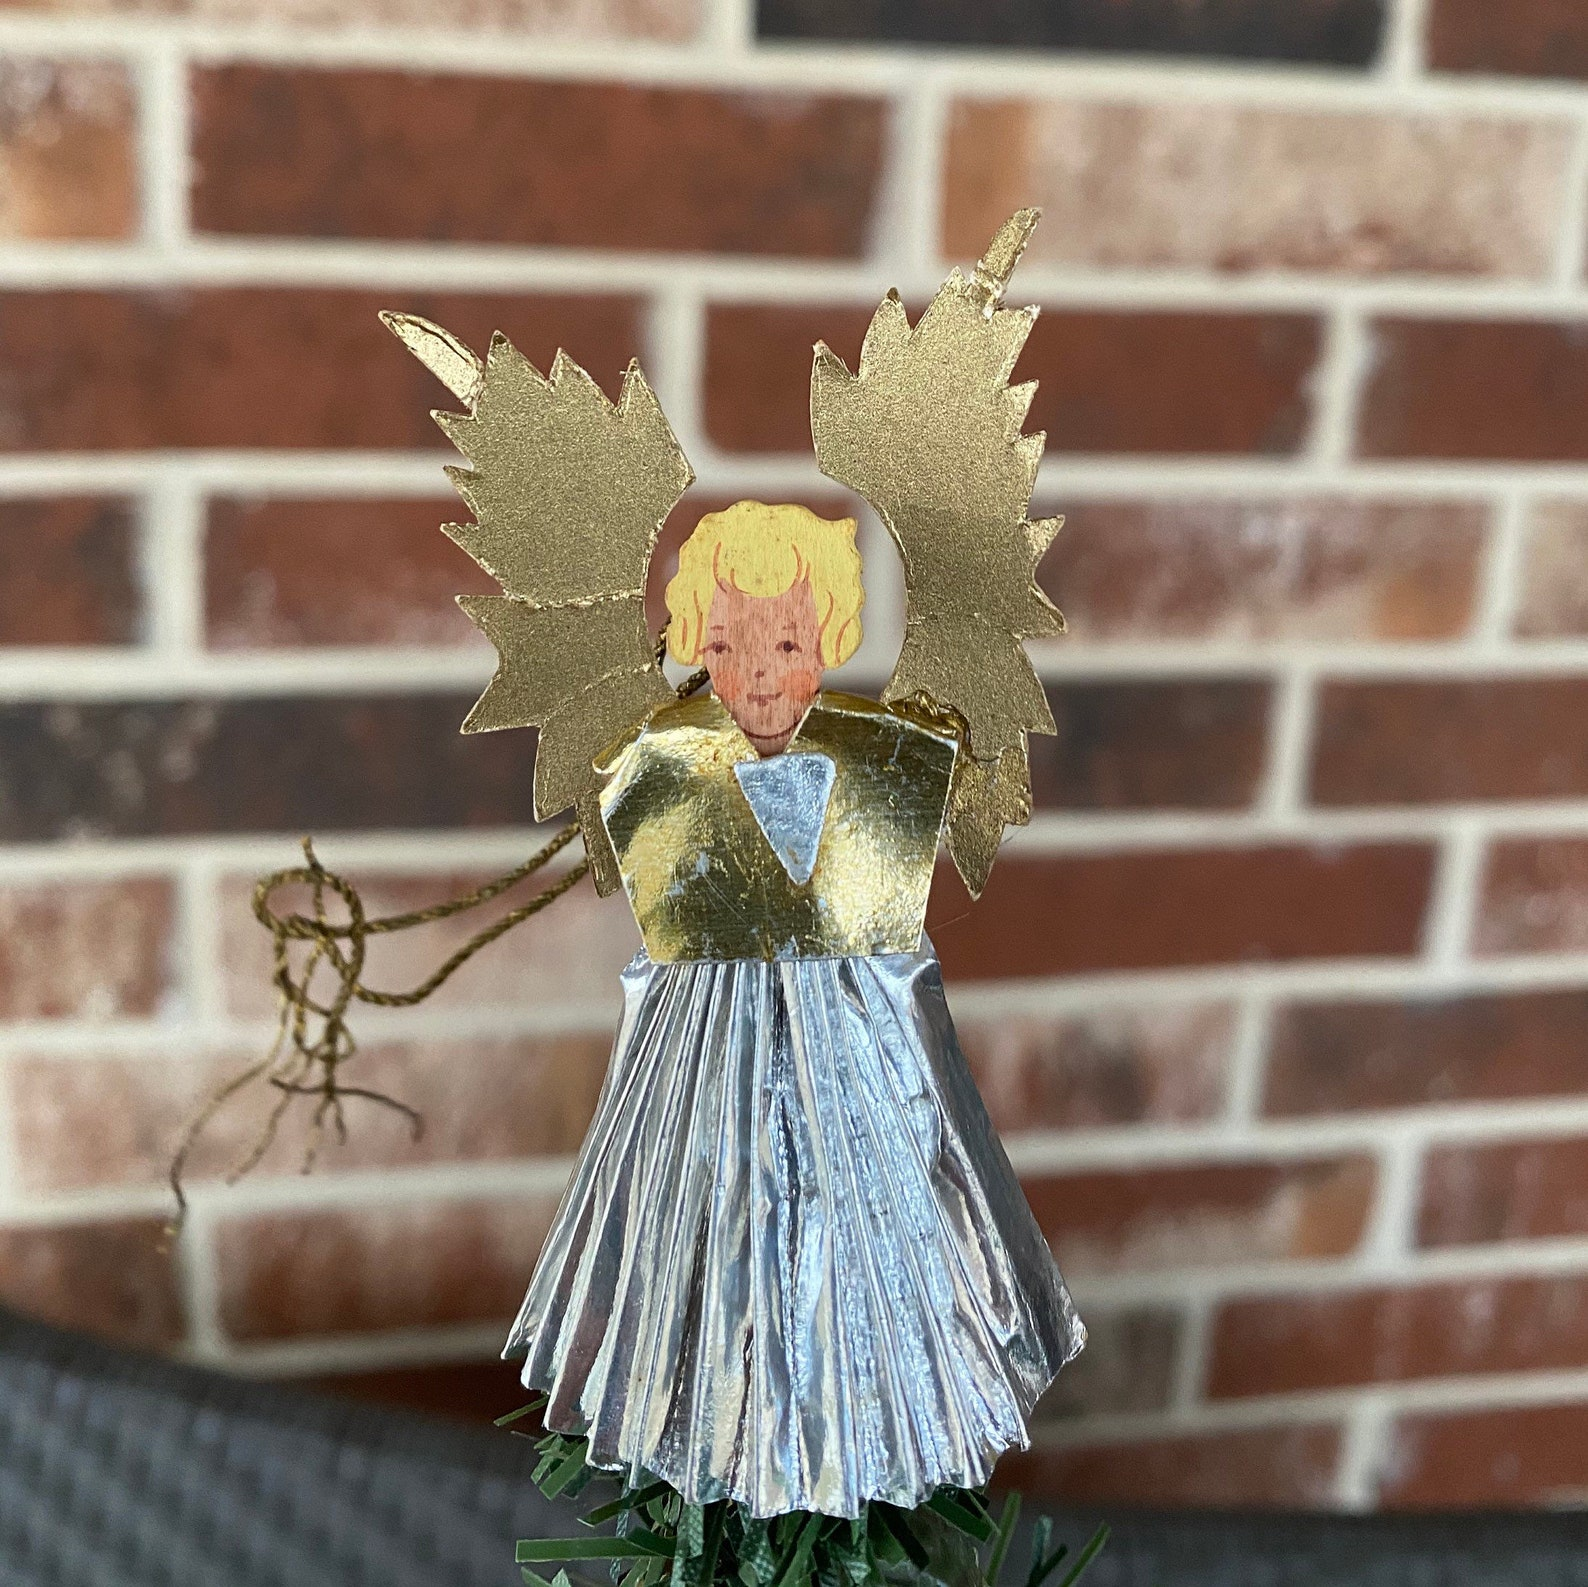 Vintage German Angel Tree Topper, Ornament, Handpainted Wooden Head, Silver Foiled Pleated Paper Gown, Gold Foiled Paper Wings